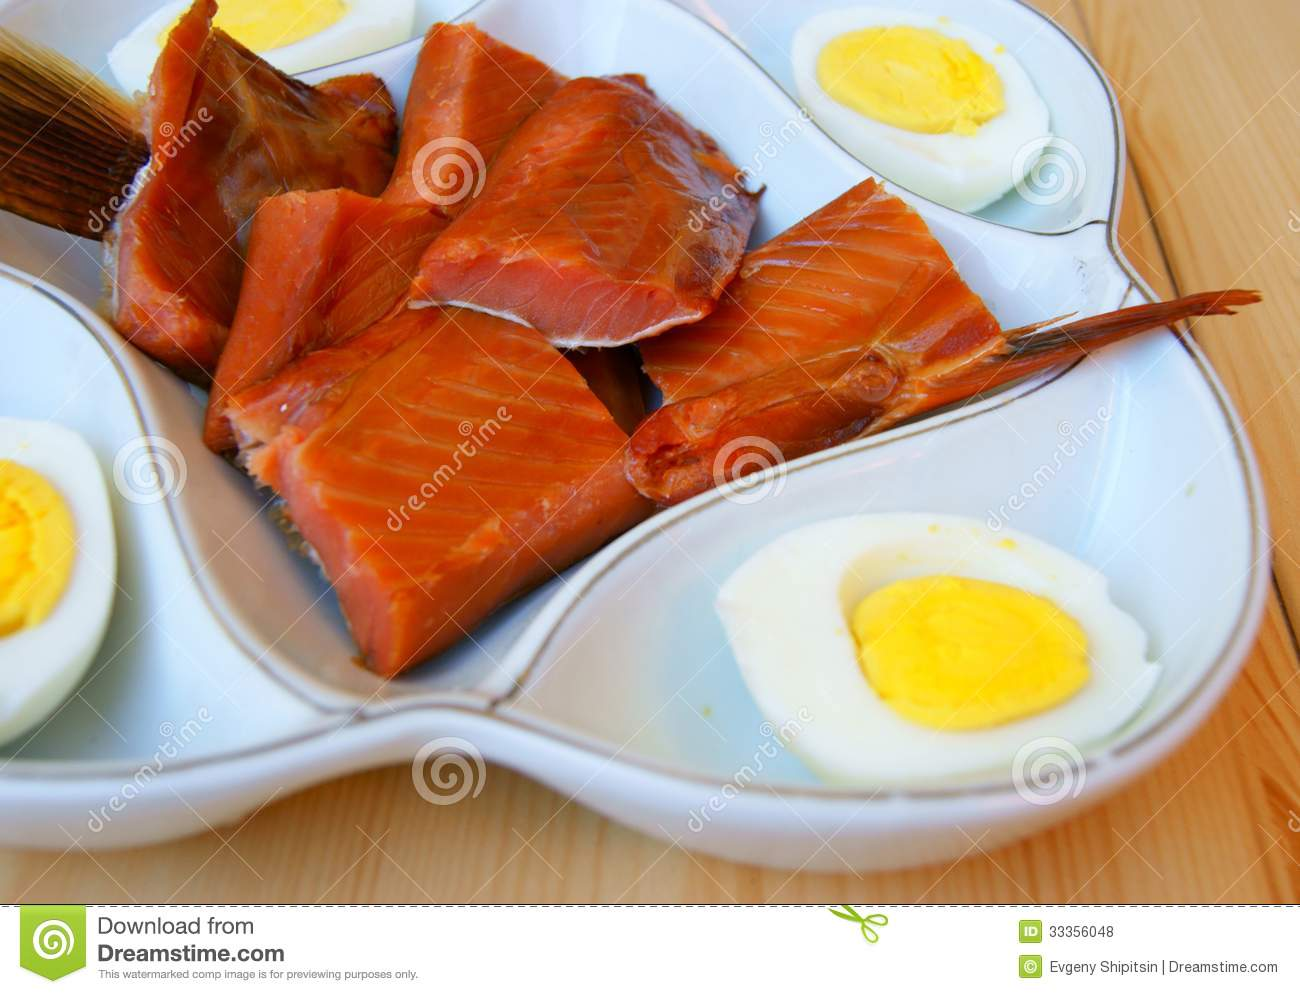 how to make fish egg